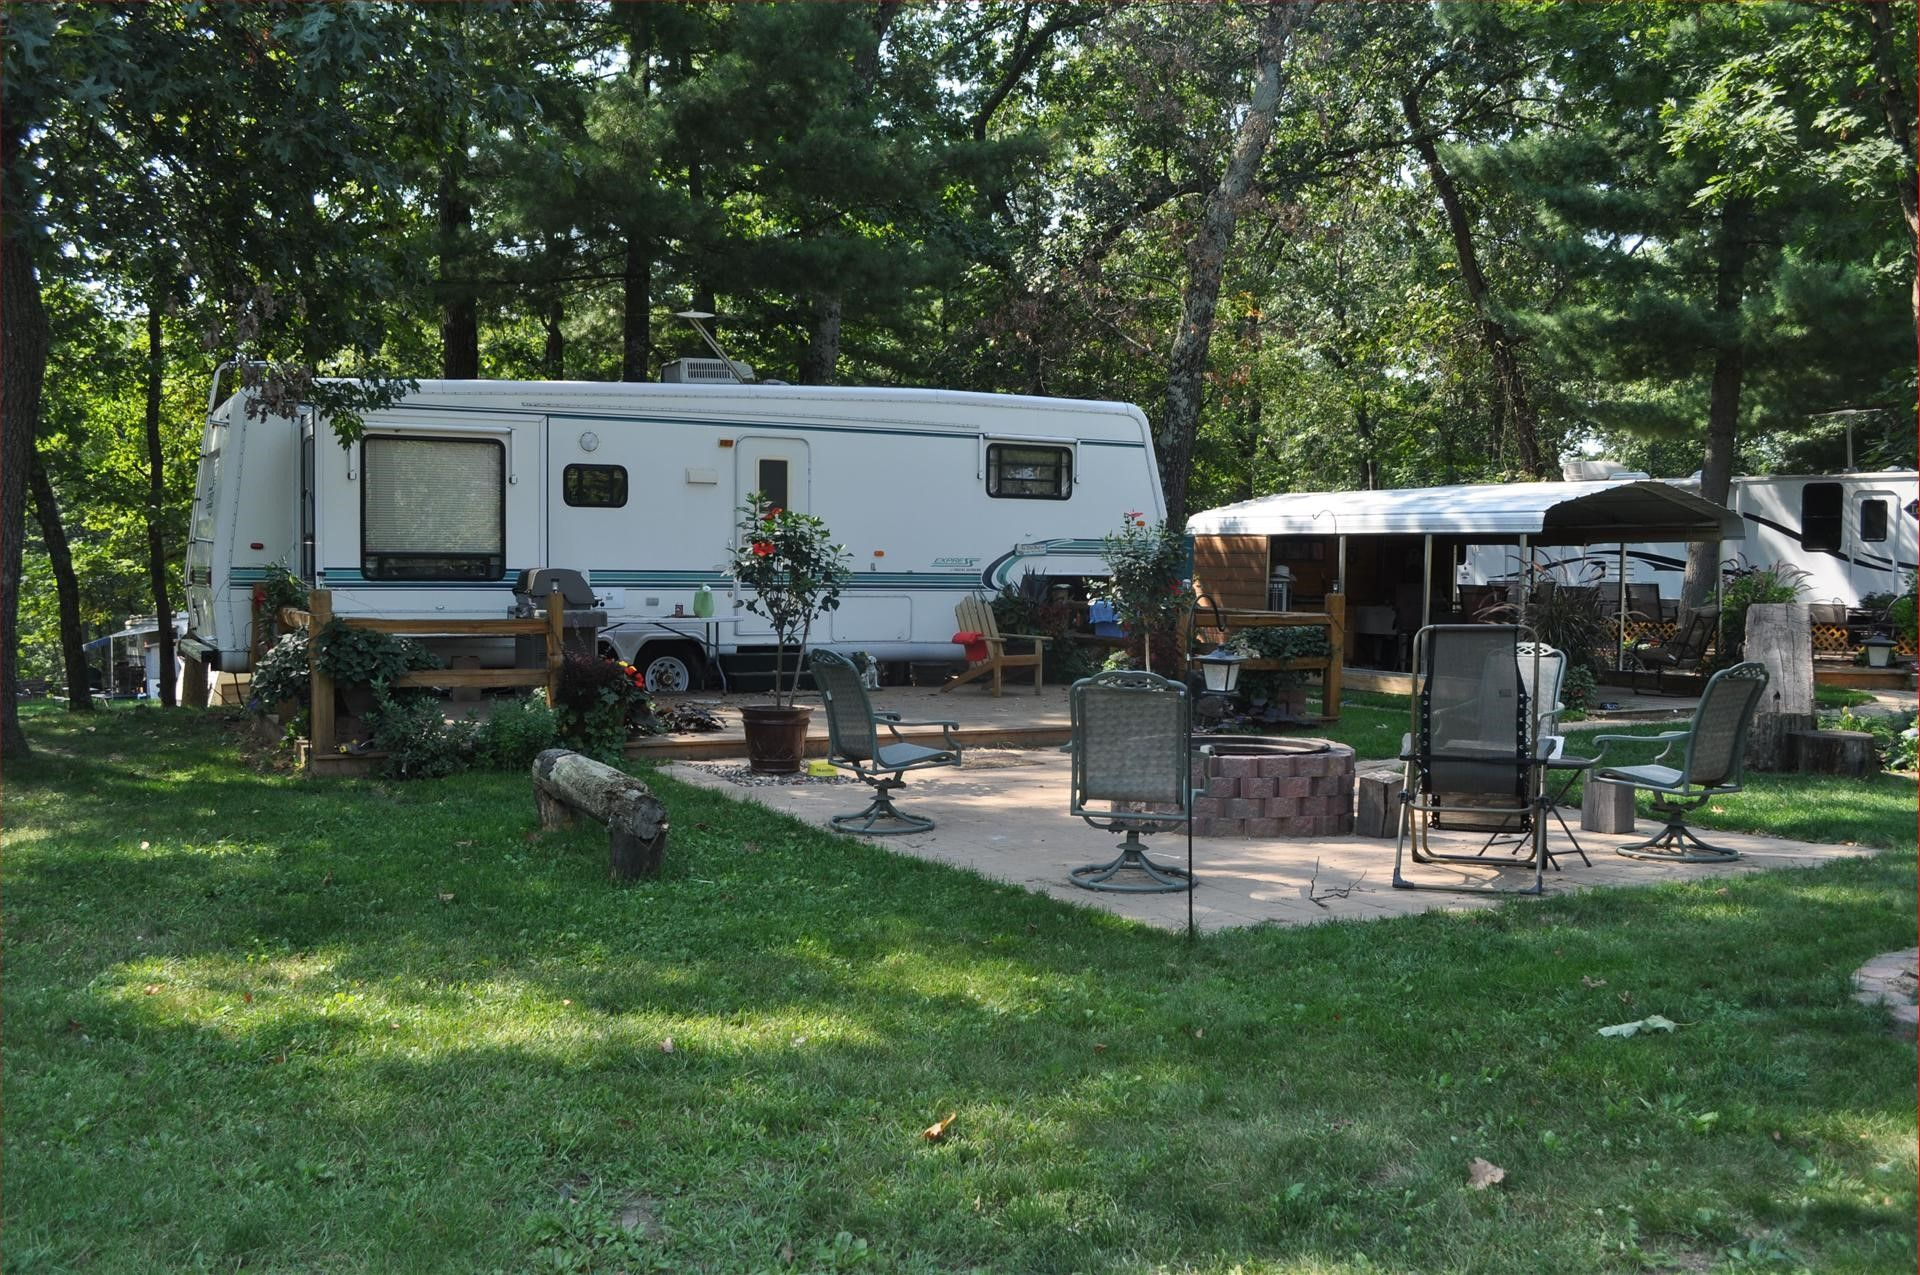 Rv camping campsite camping ideas camper trailers campers mobile home rv living decks boating